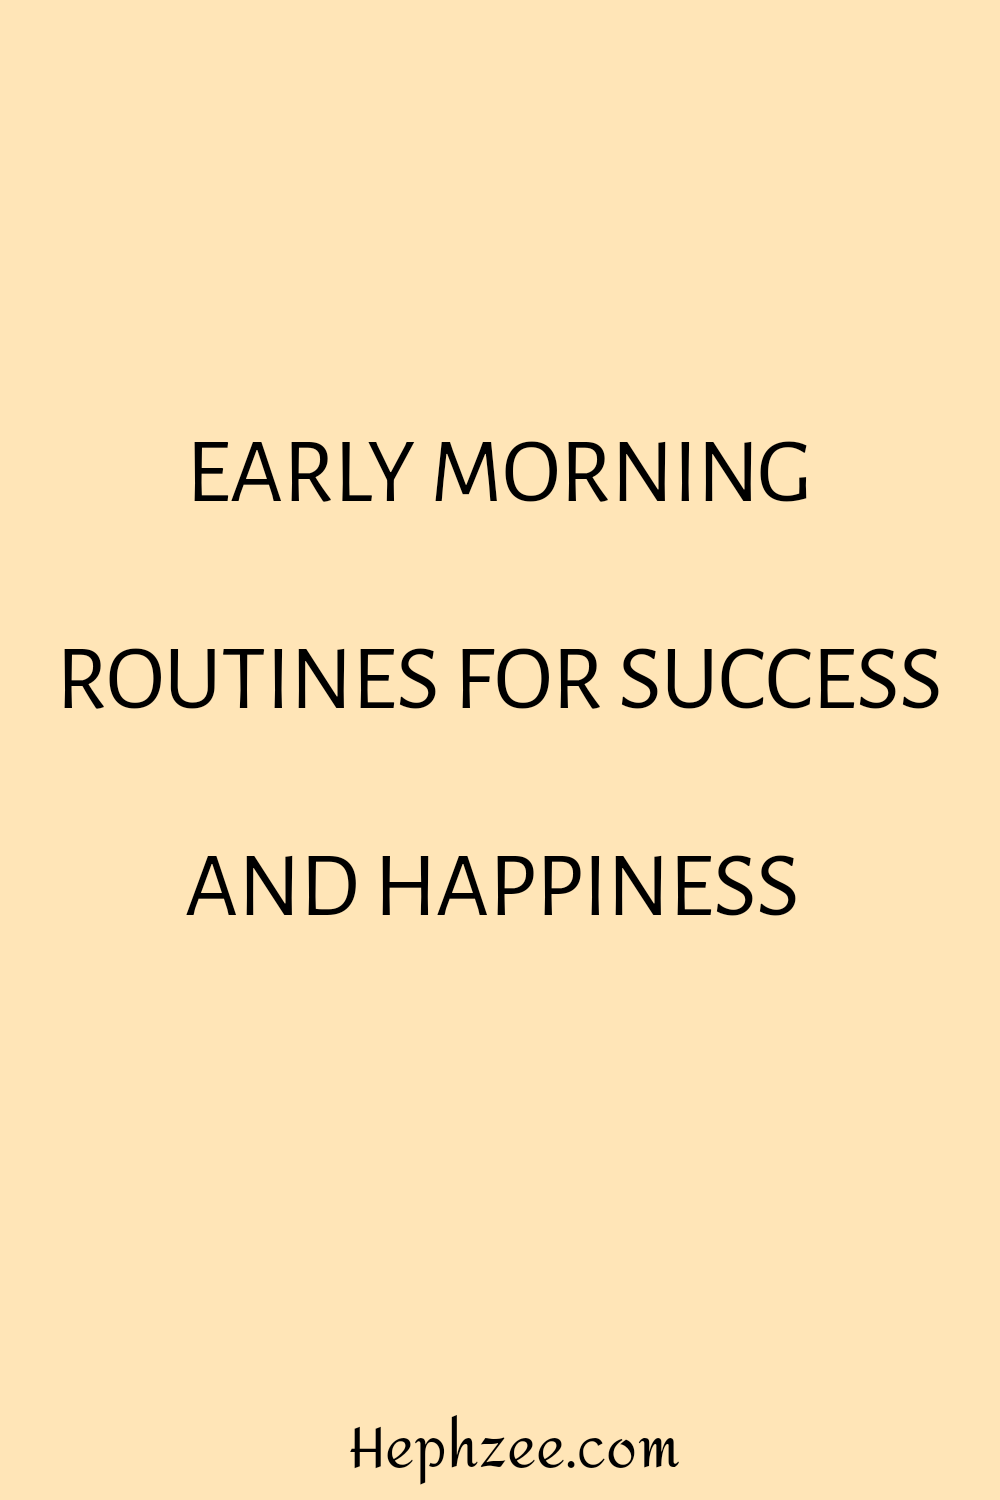 Early morning routines for success and happiness